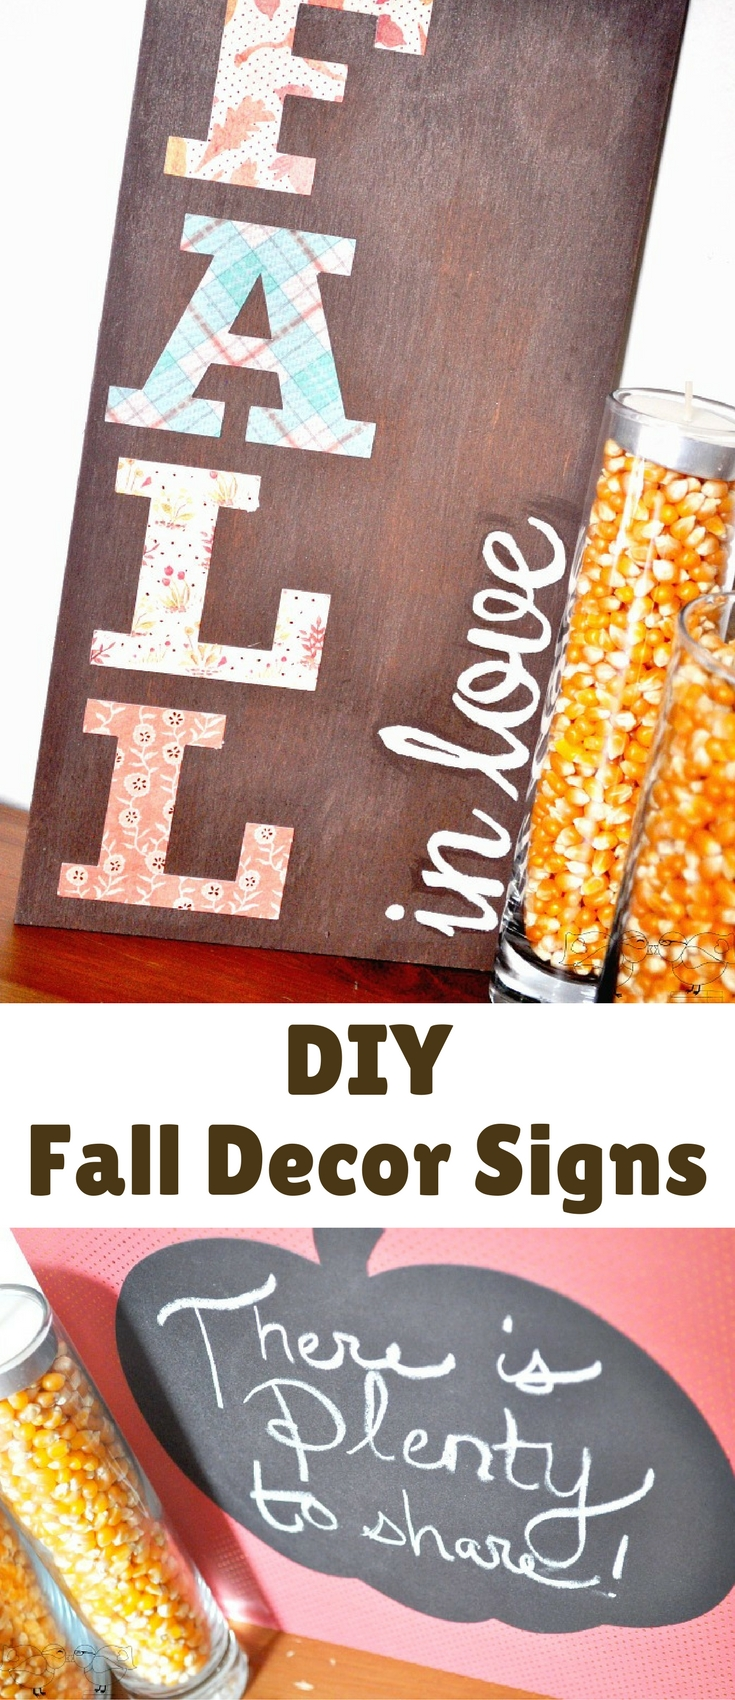 Diy Fall Decor Signs Blogger Bests